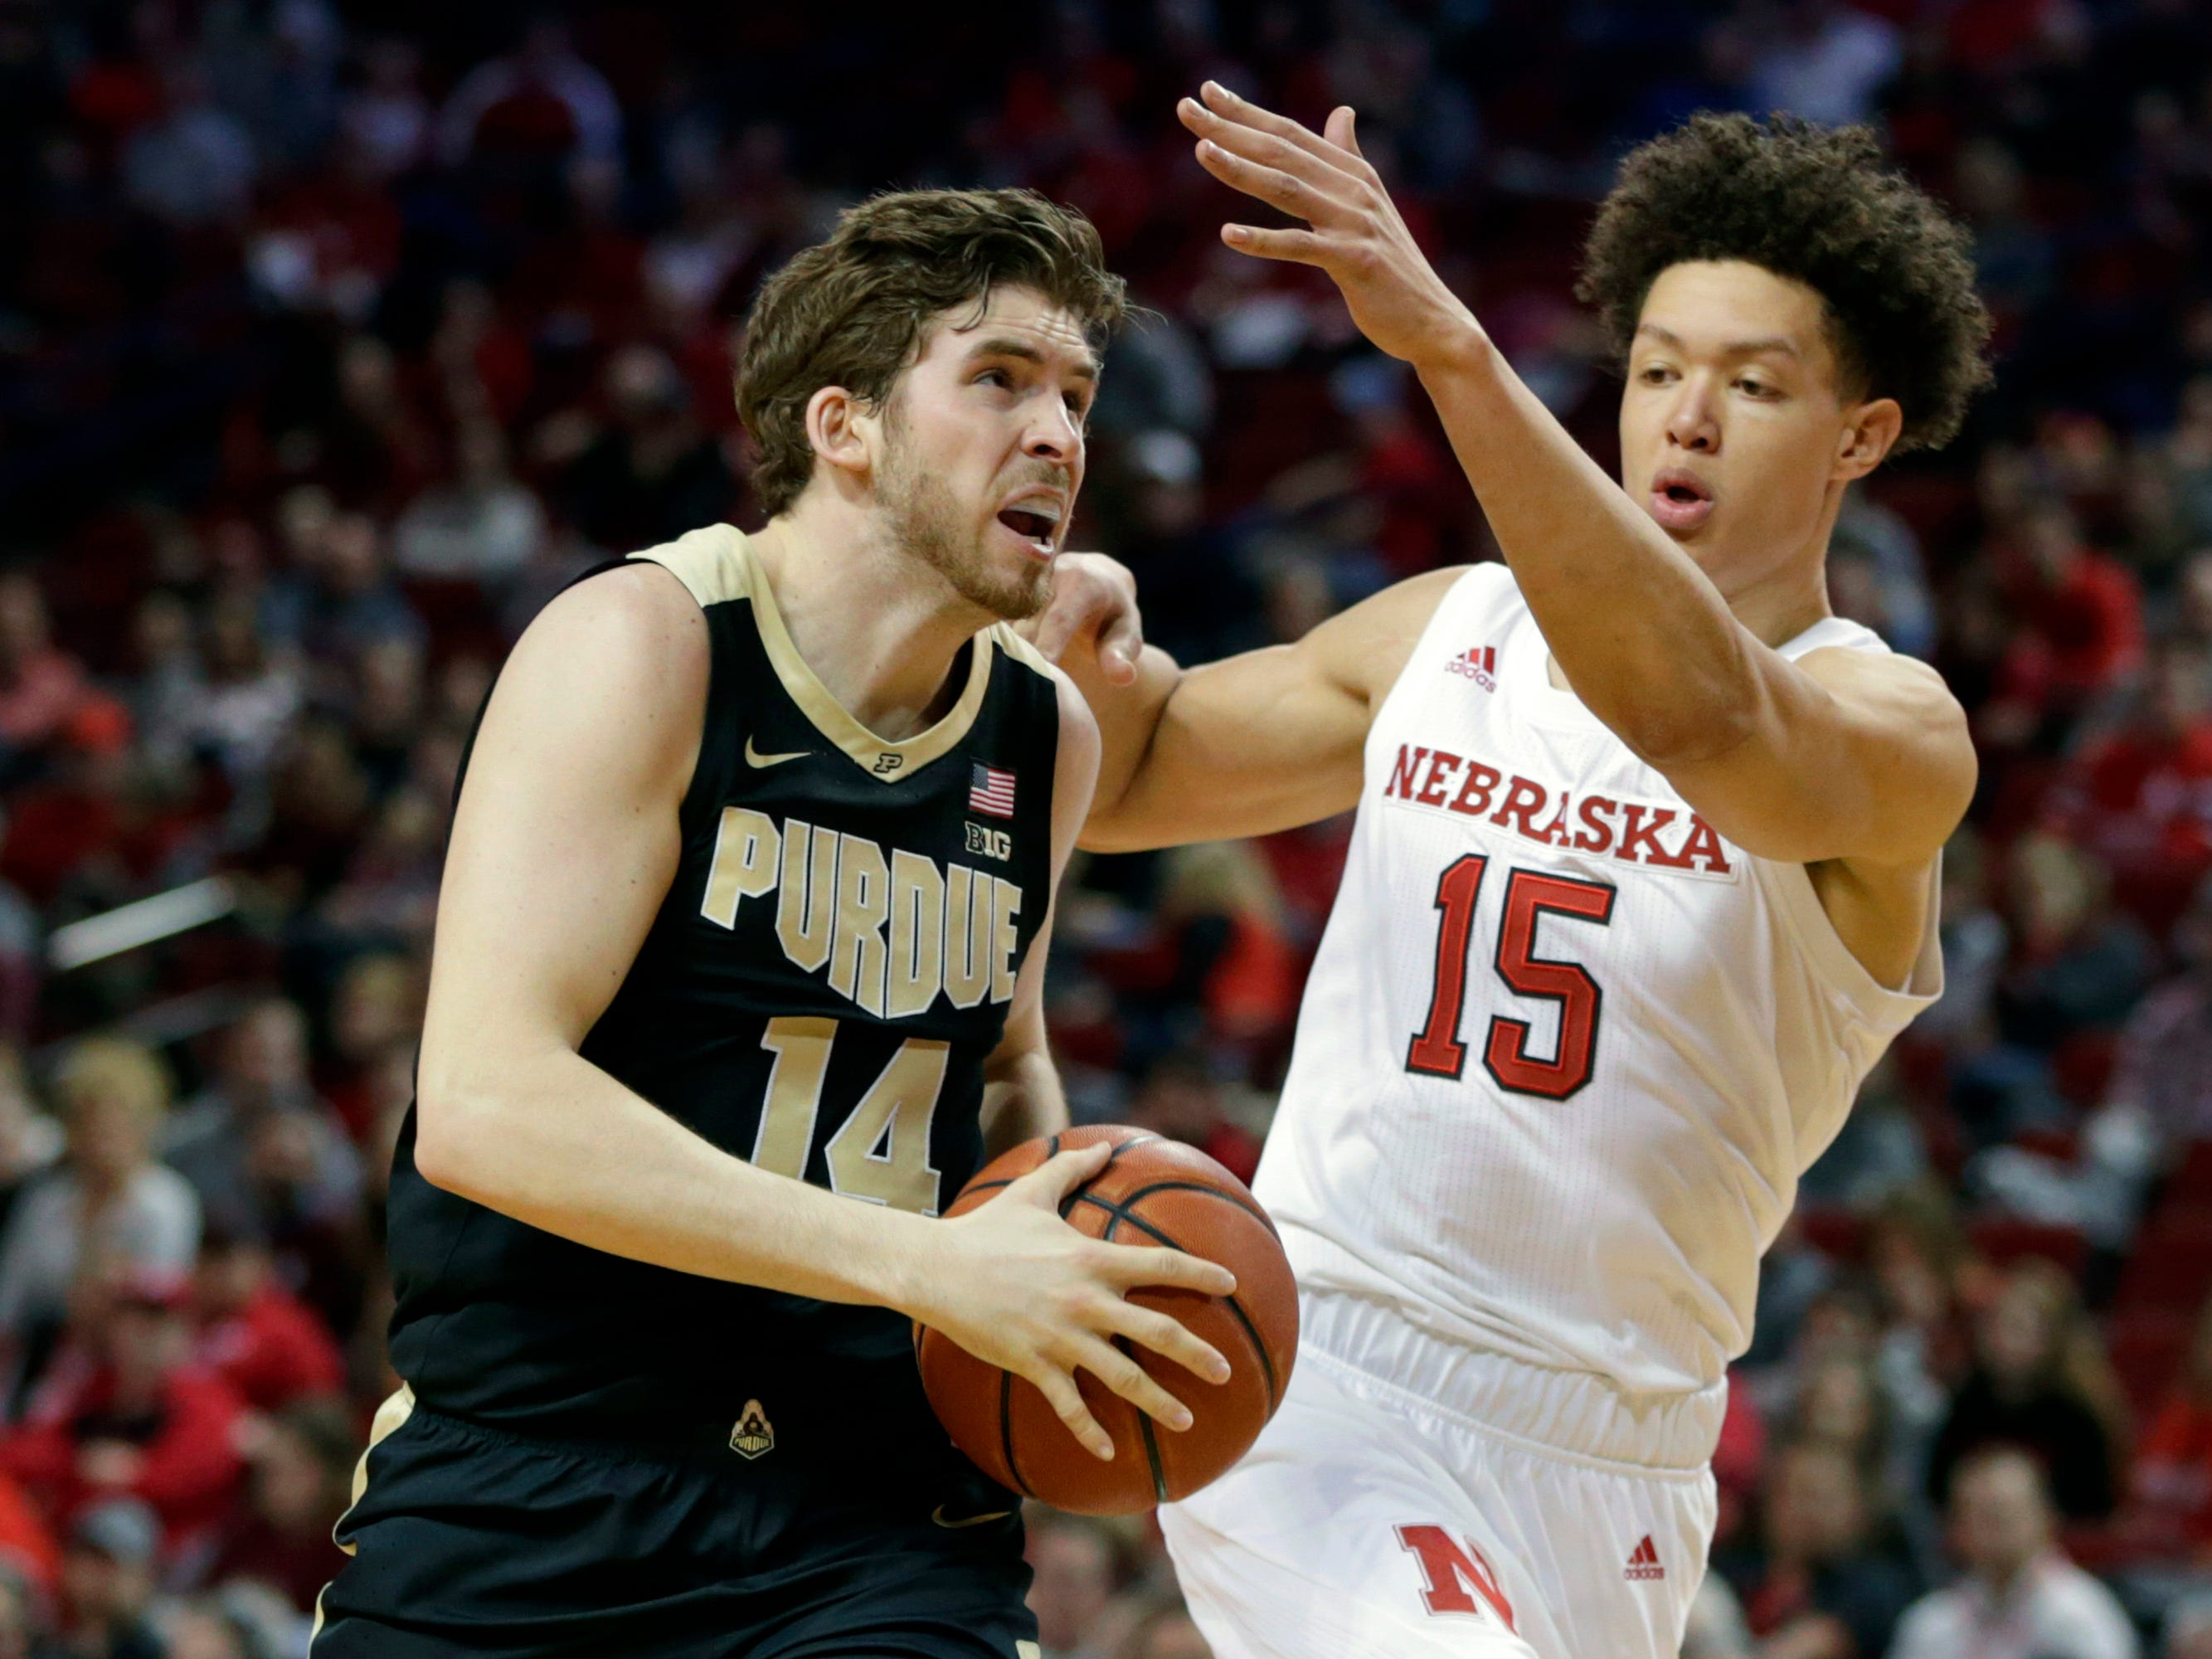 Purdue's Ryan Cline (14) goes to the basket against Nebraska's Isaiah Roby (15) during the first half of an NCAA college basketball game in Lincoln, Neb., Saturday, Feb. 23, 2019.